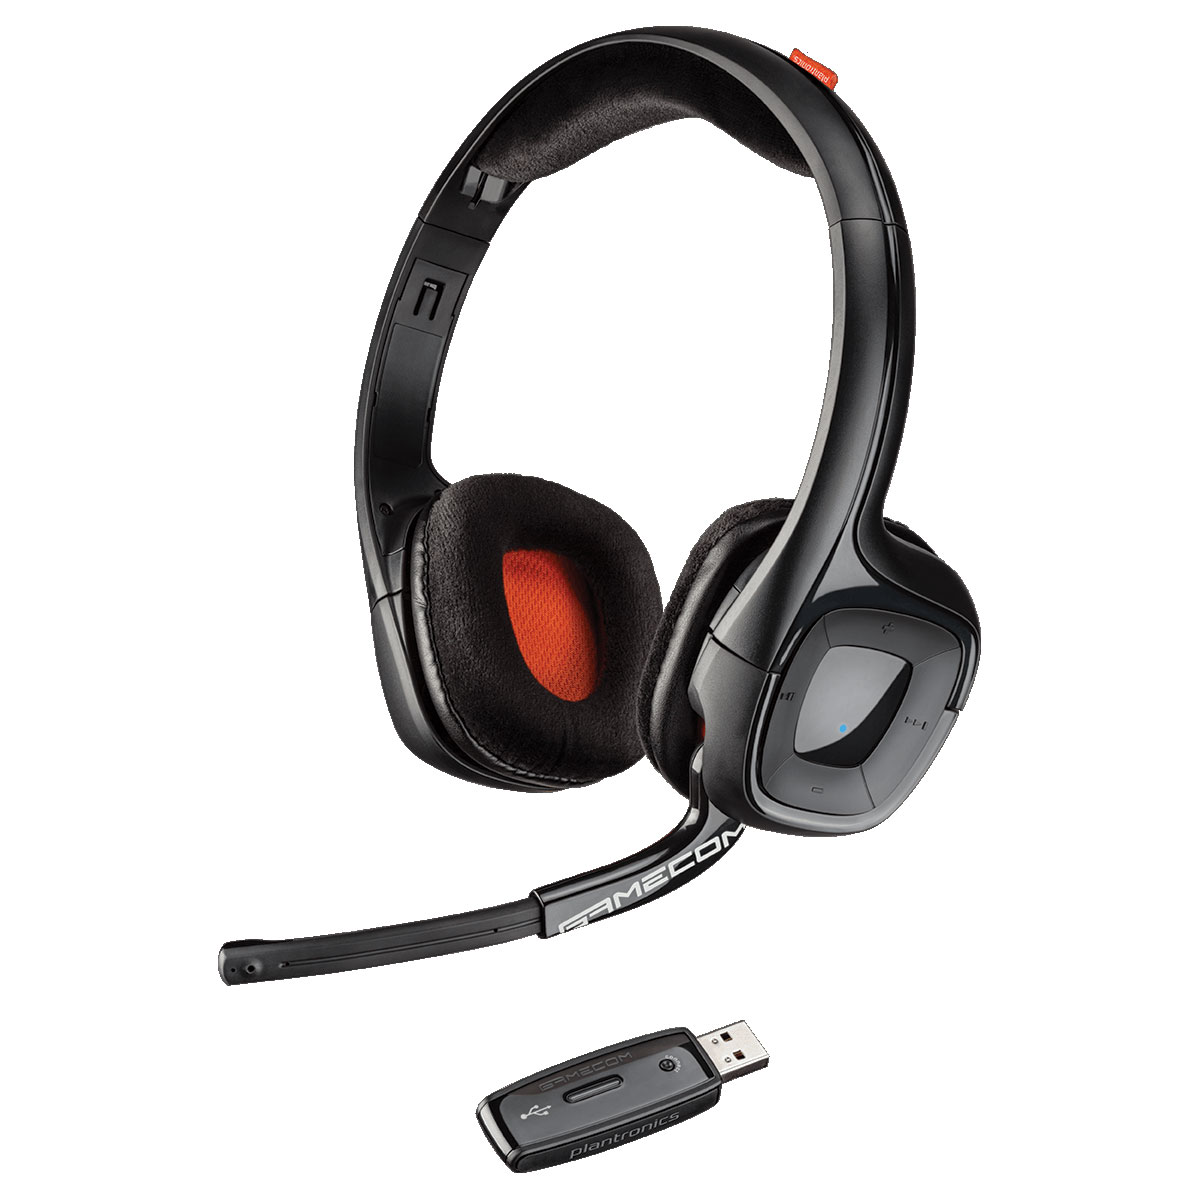 plantronics gamecom 818 p80 micro casque plantronics sur ldlc. Black Bedroom Furniture Sets. Home Design Ideas